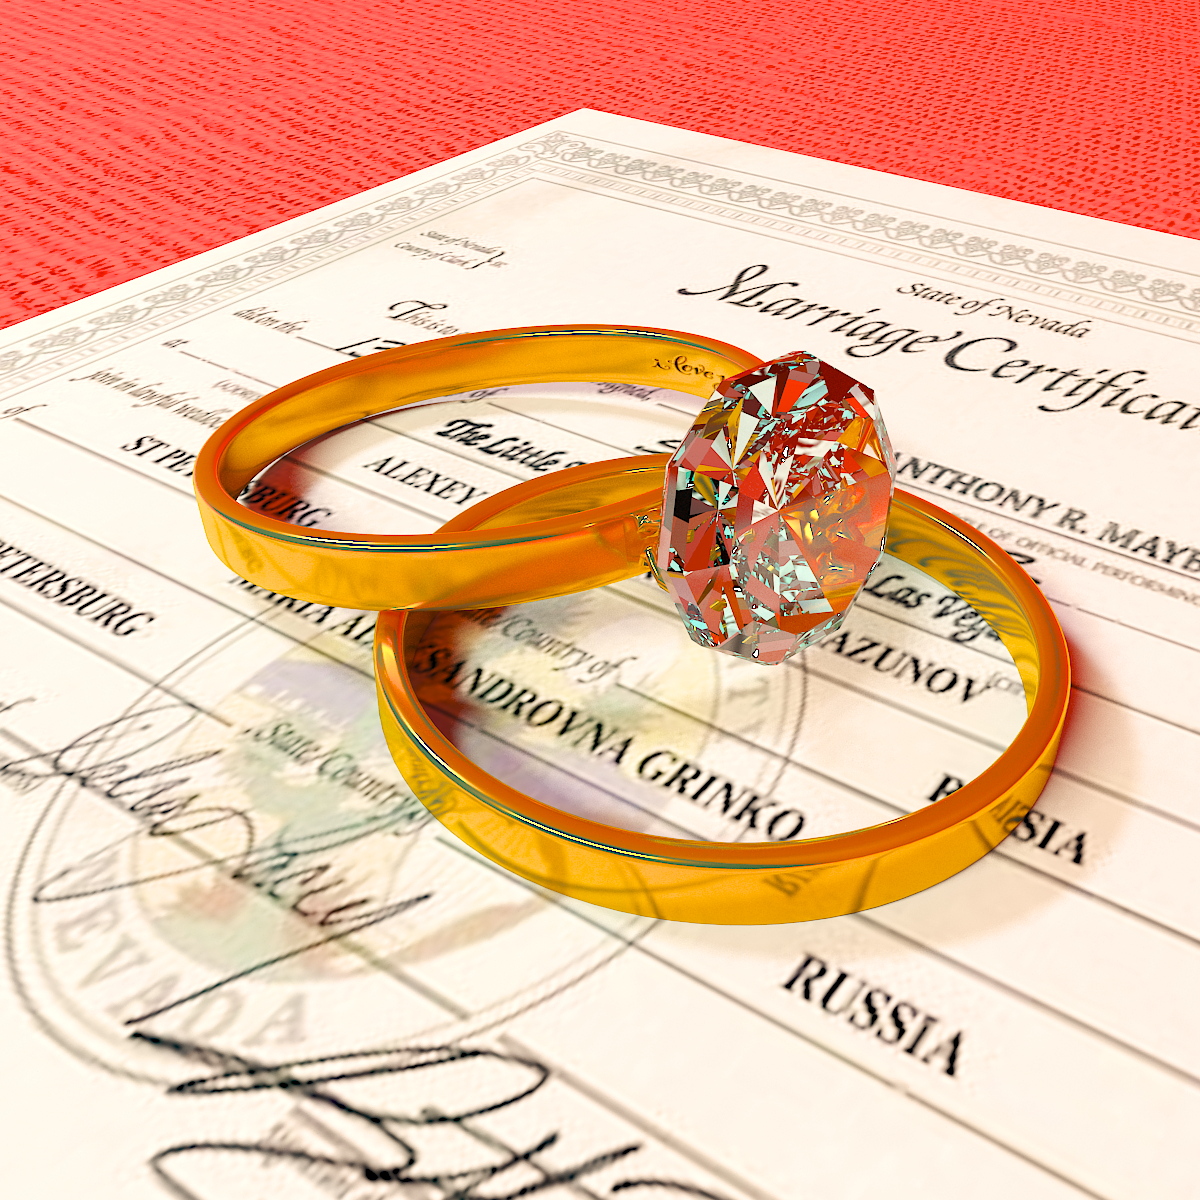 3d visualization of the project in the wedding rings 3d max, render vray 3.0 of Heavyraine